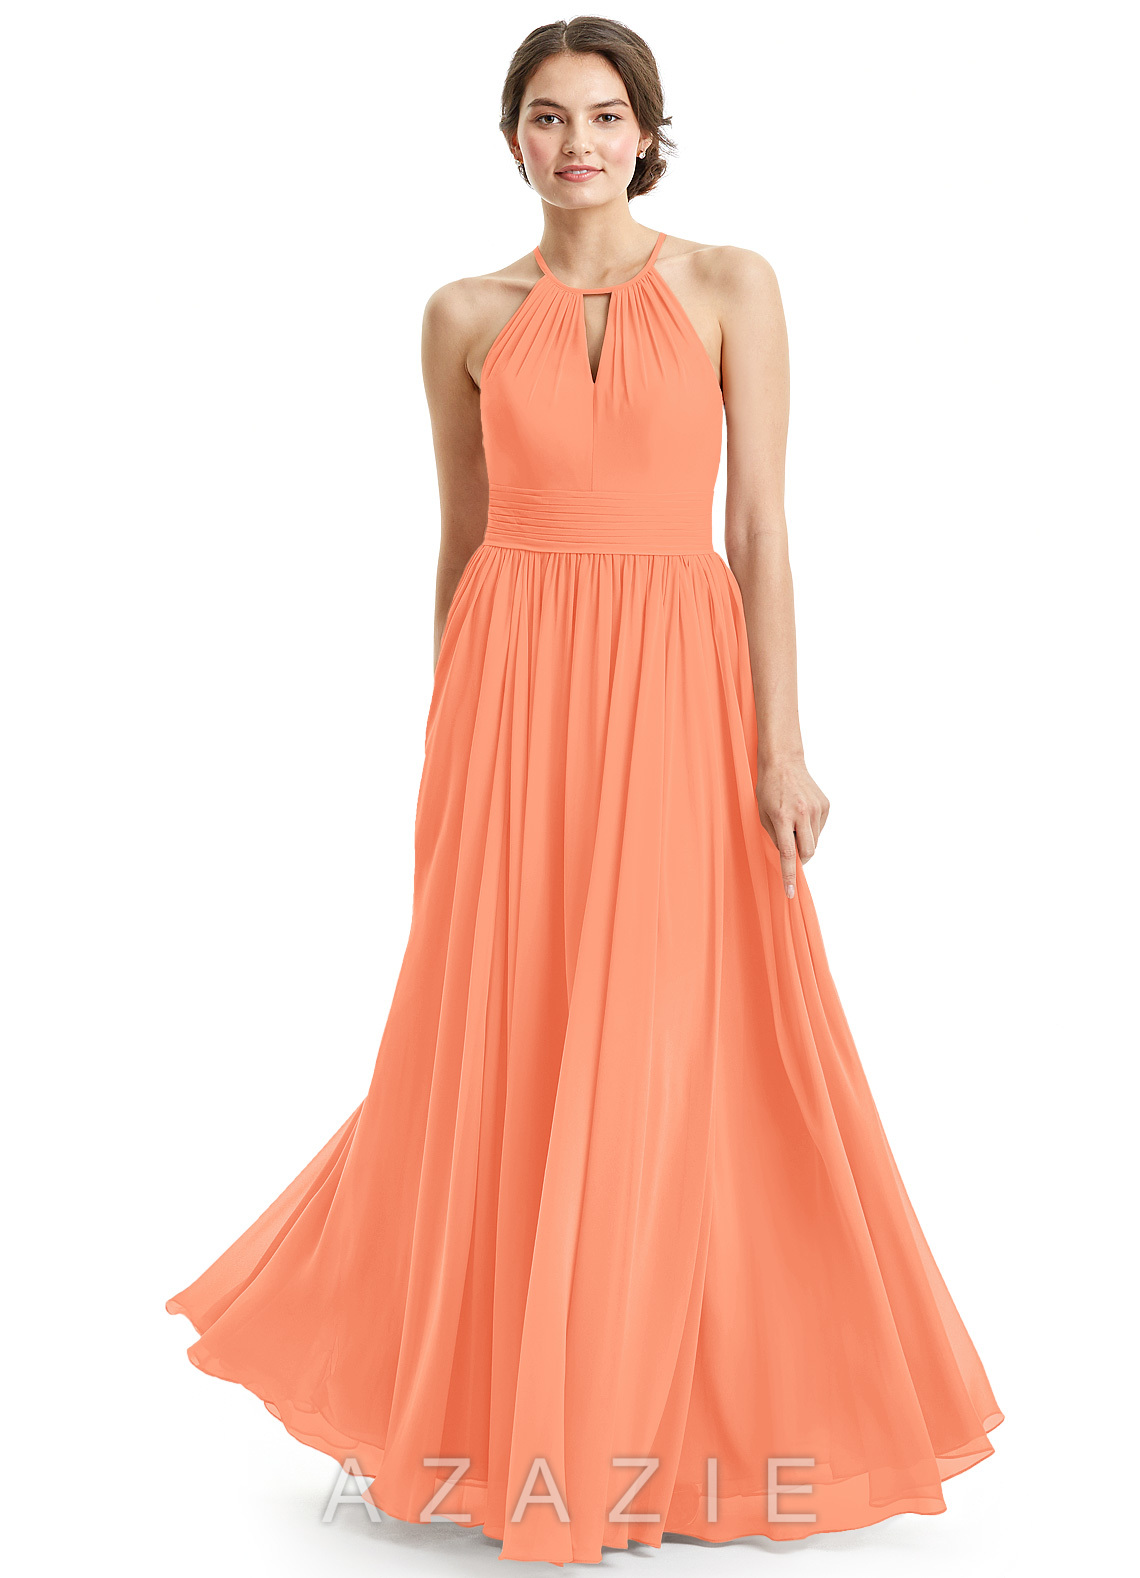 papaya colored bridesmaid dresses